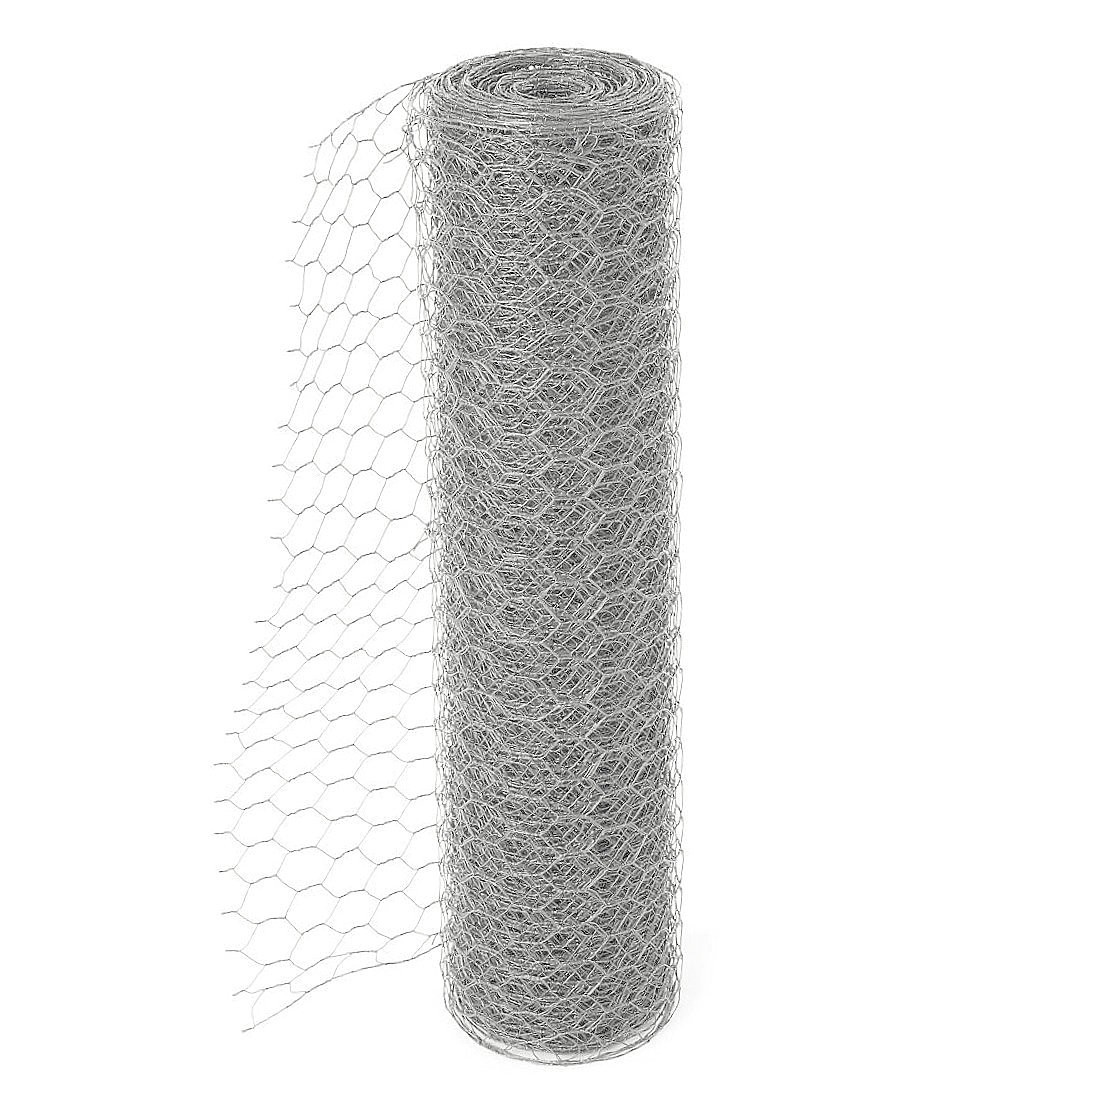 Galvanised Chicken Wire Netting